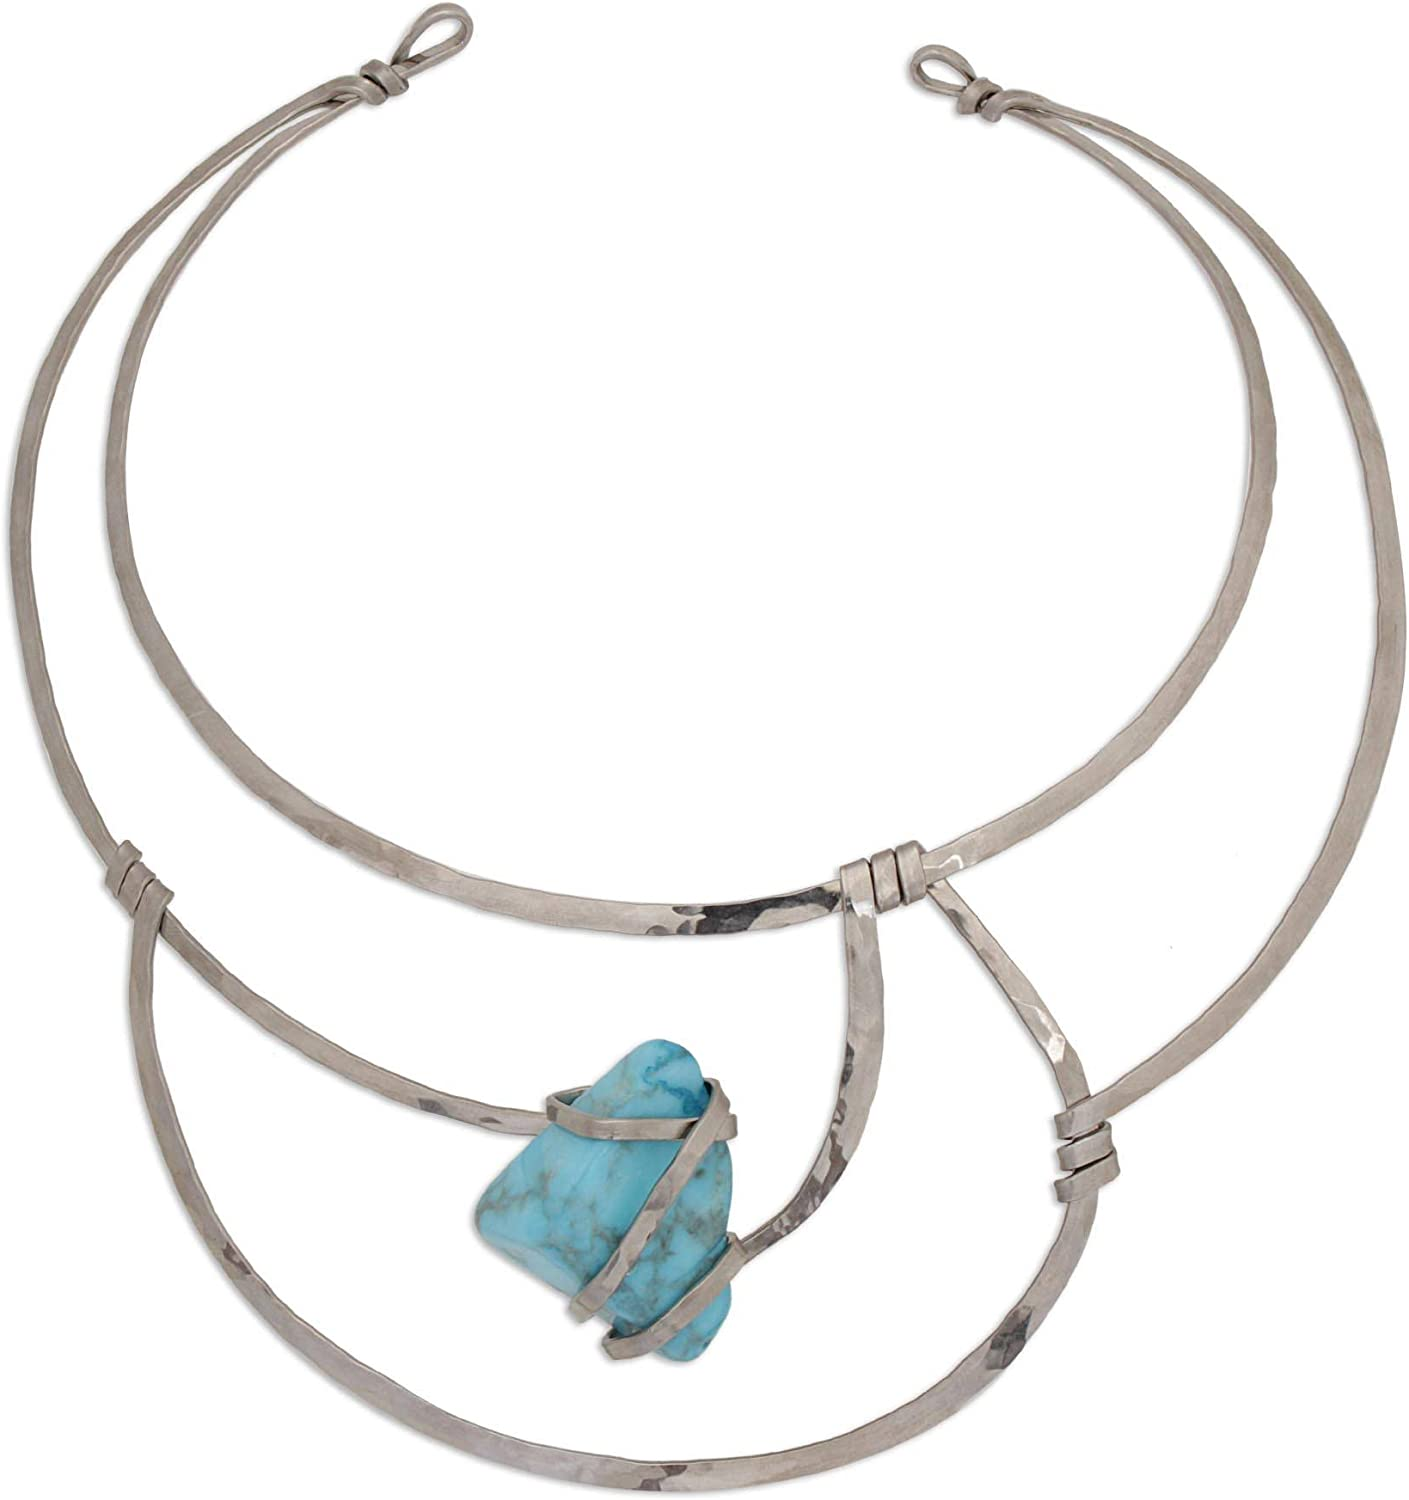 NOVICA Howlite Stainless Steel Collar Necklace, 13.75